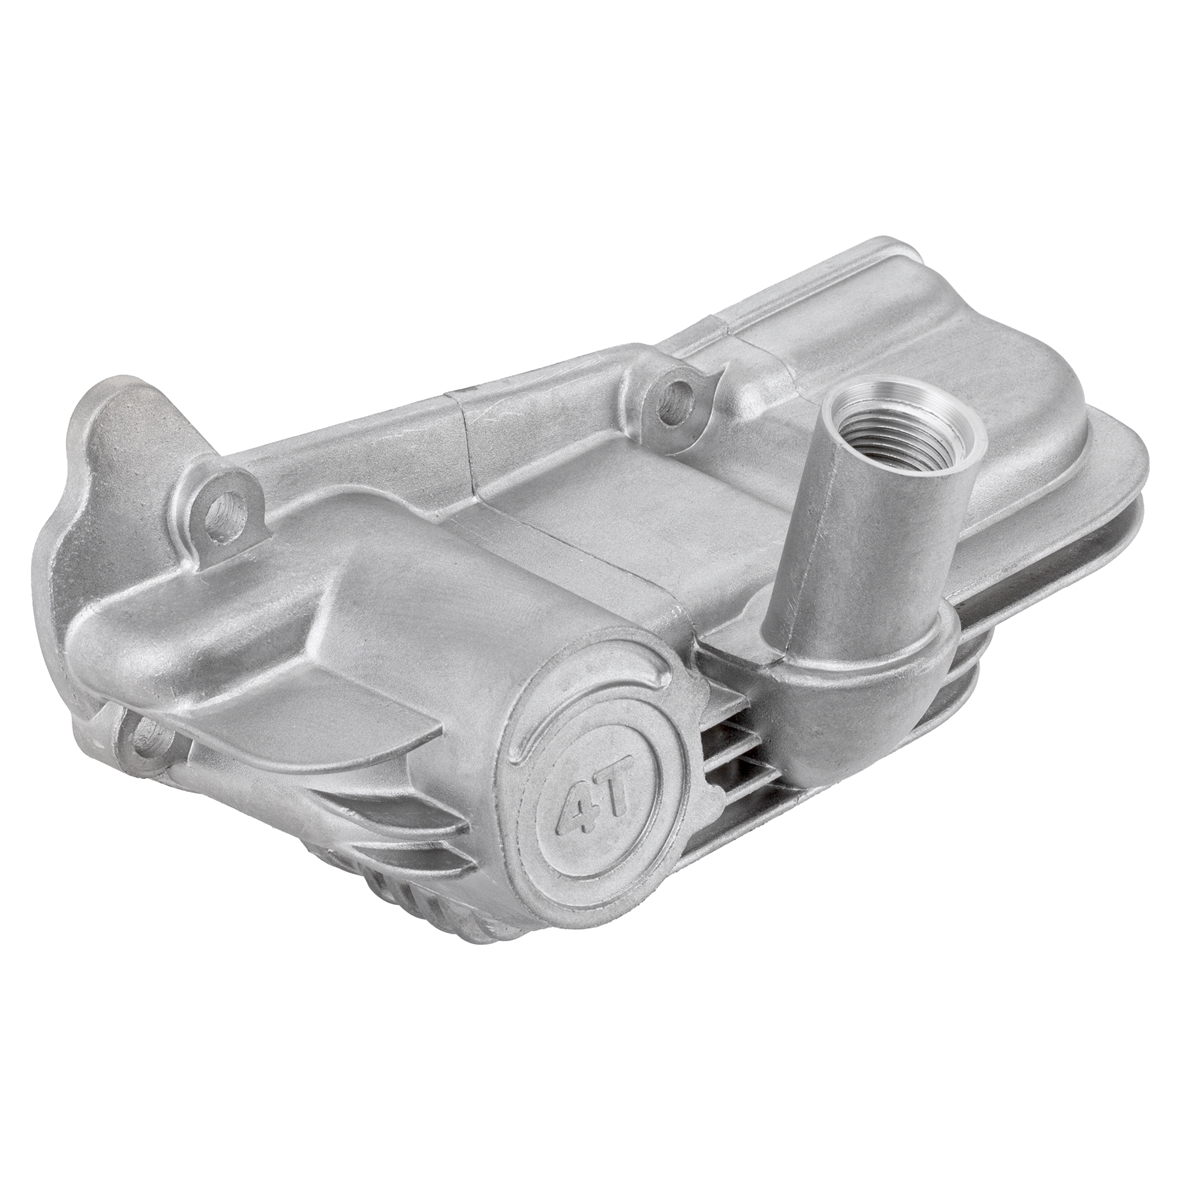 Product image for 'Oil Pan PIAGGIOTitle'